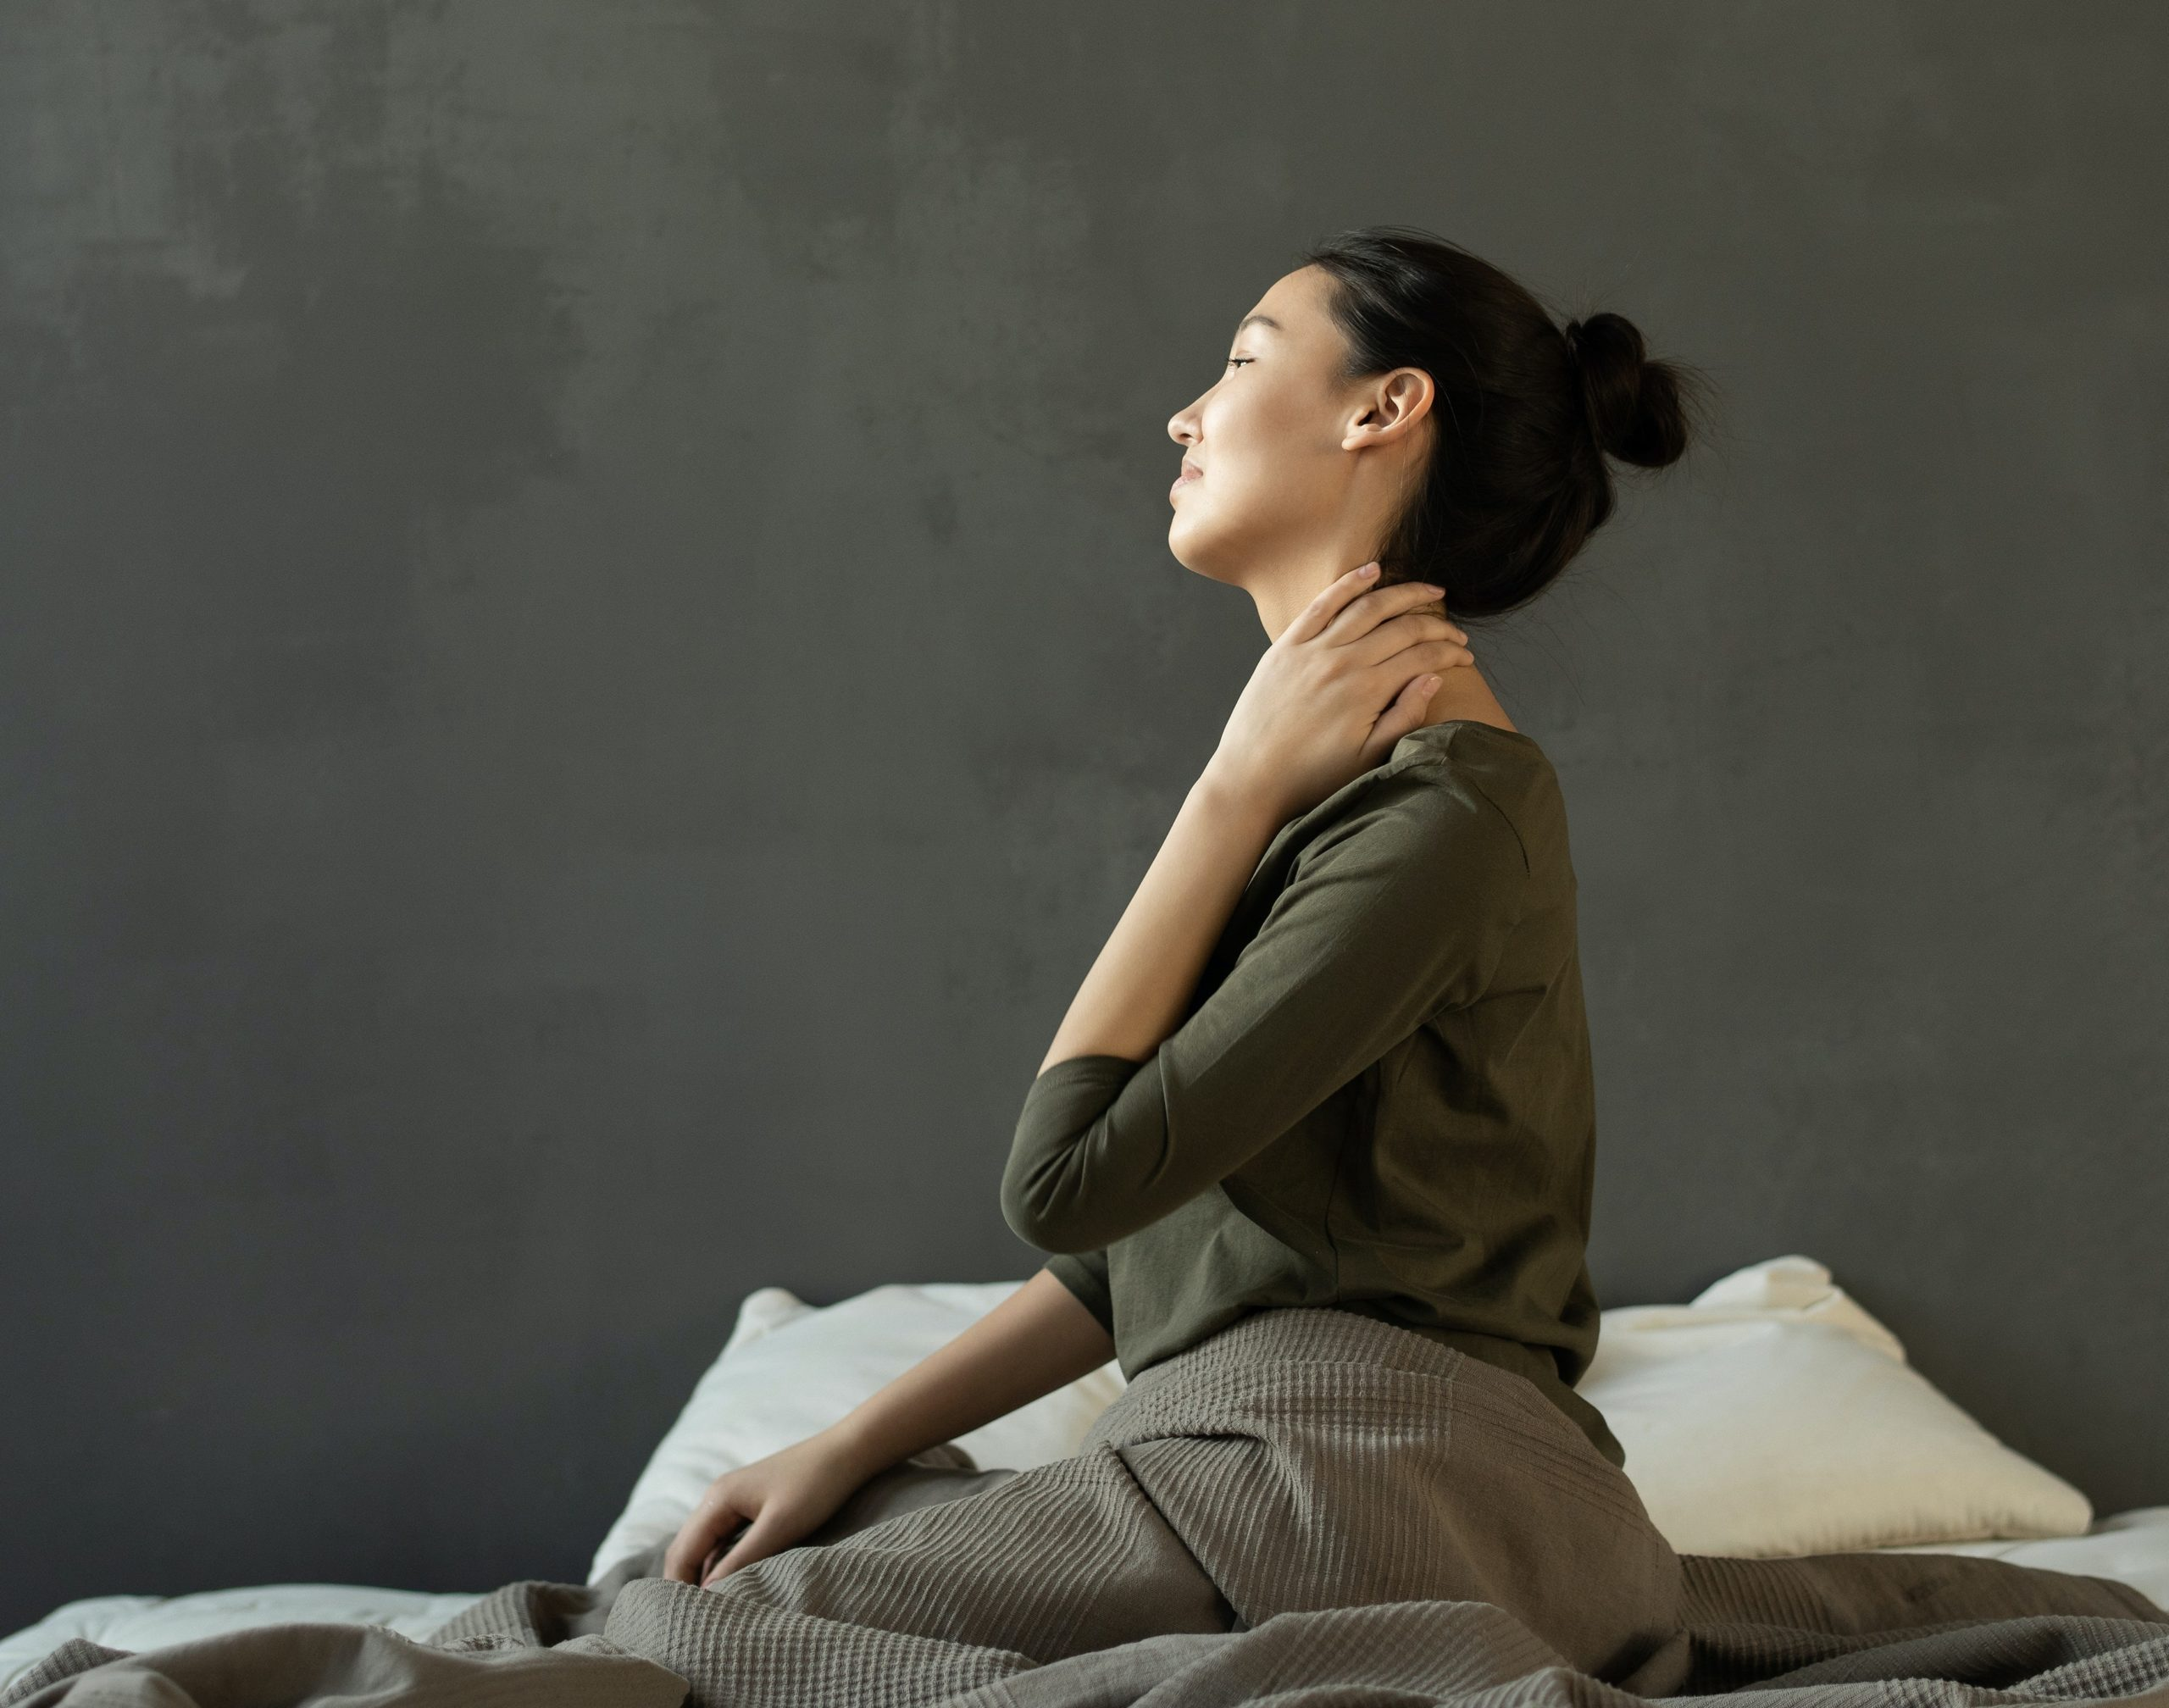 Research Update: Acupuncture for Fibromyalgia